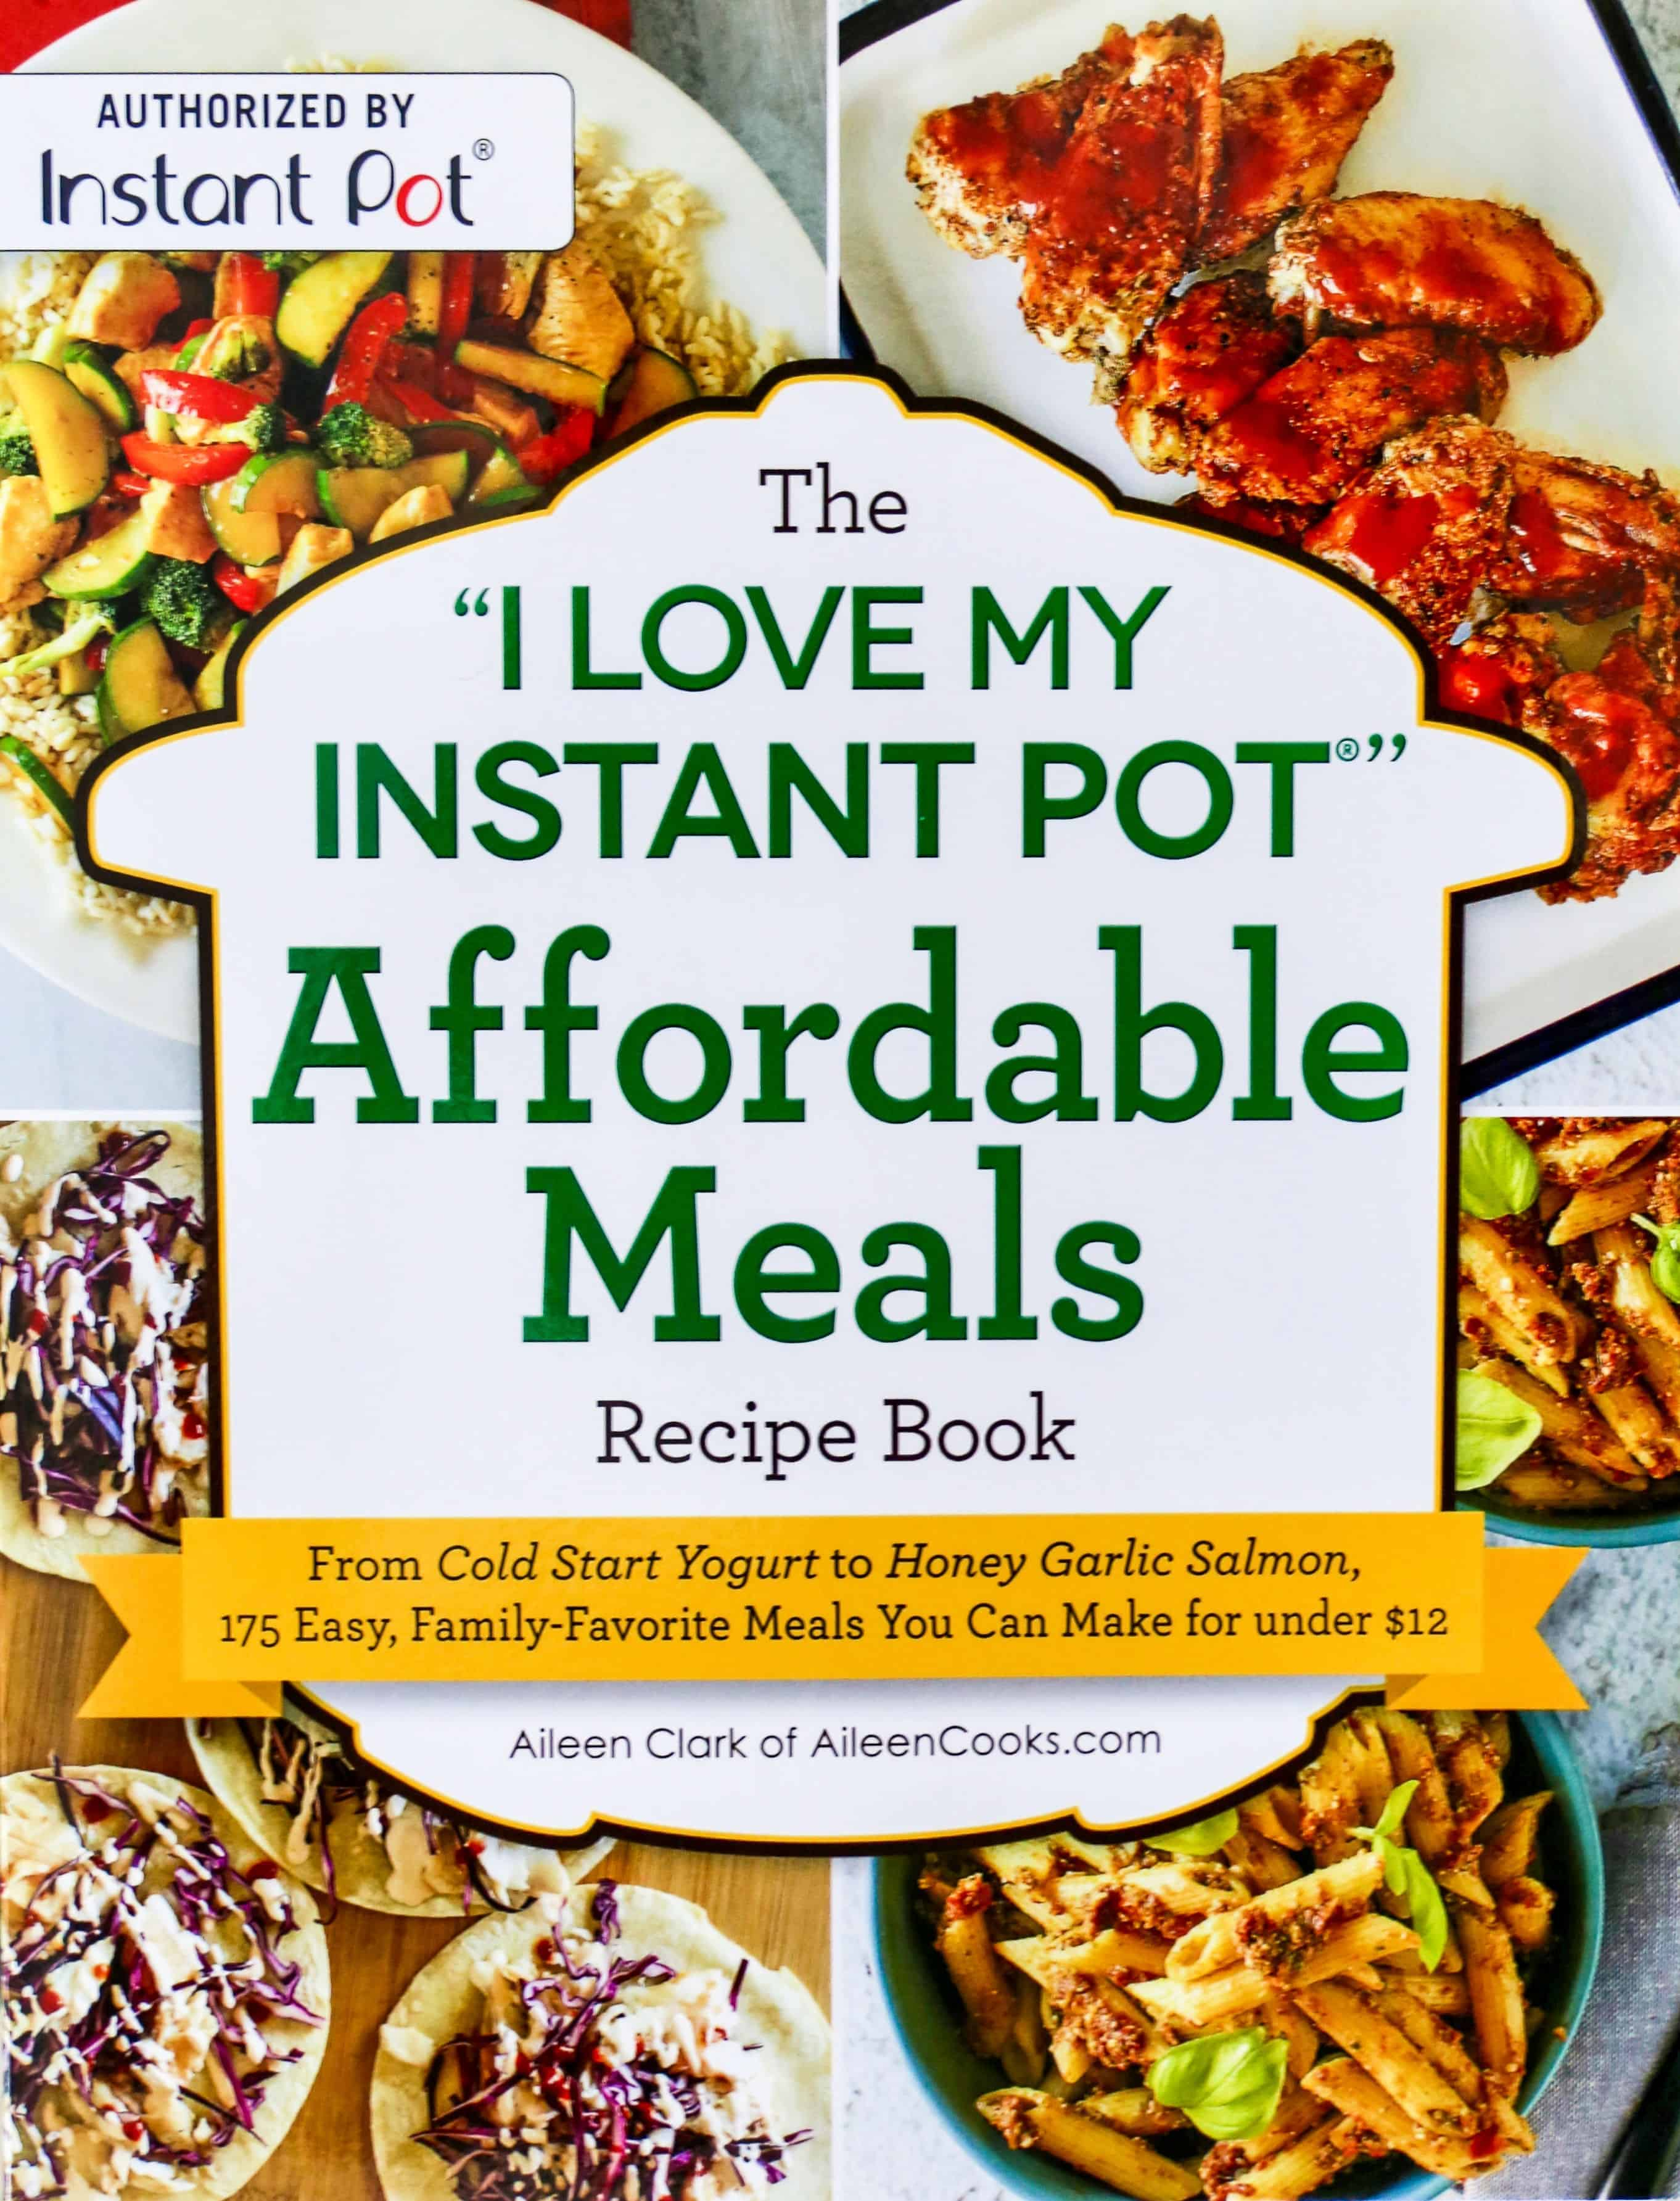 I Love My Instant Pot Affordable Meals Recipe Book